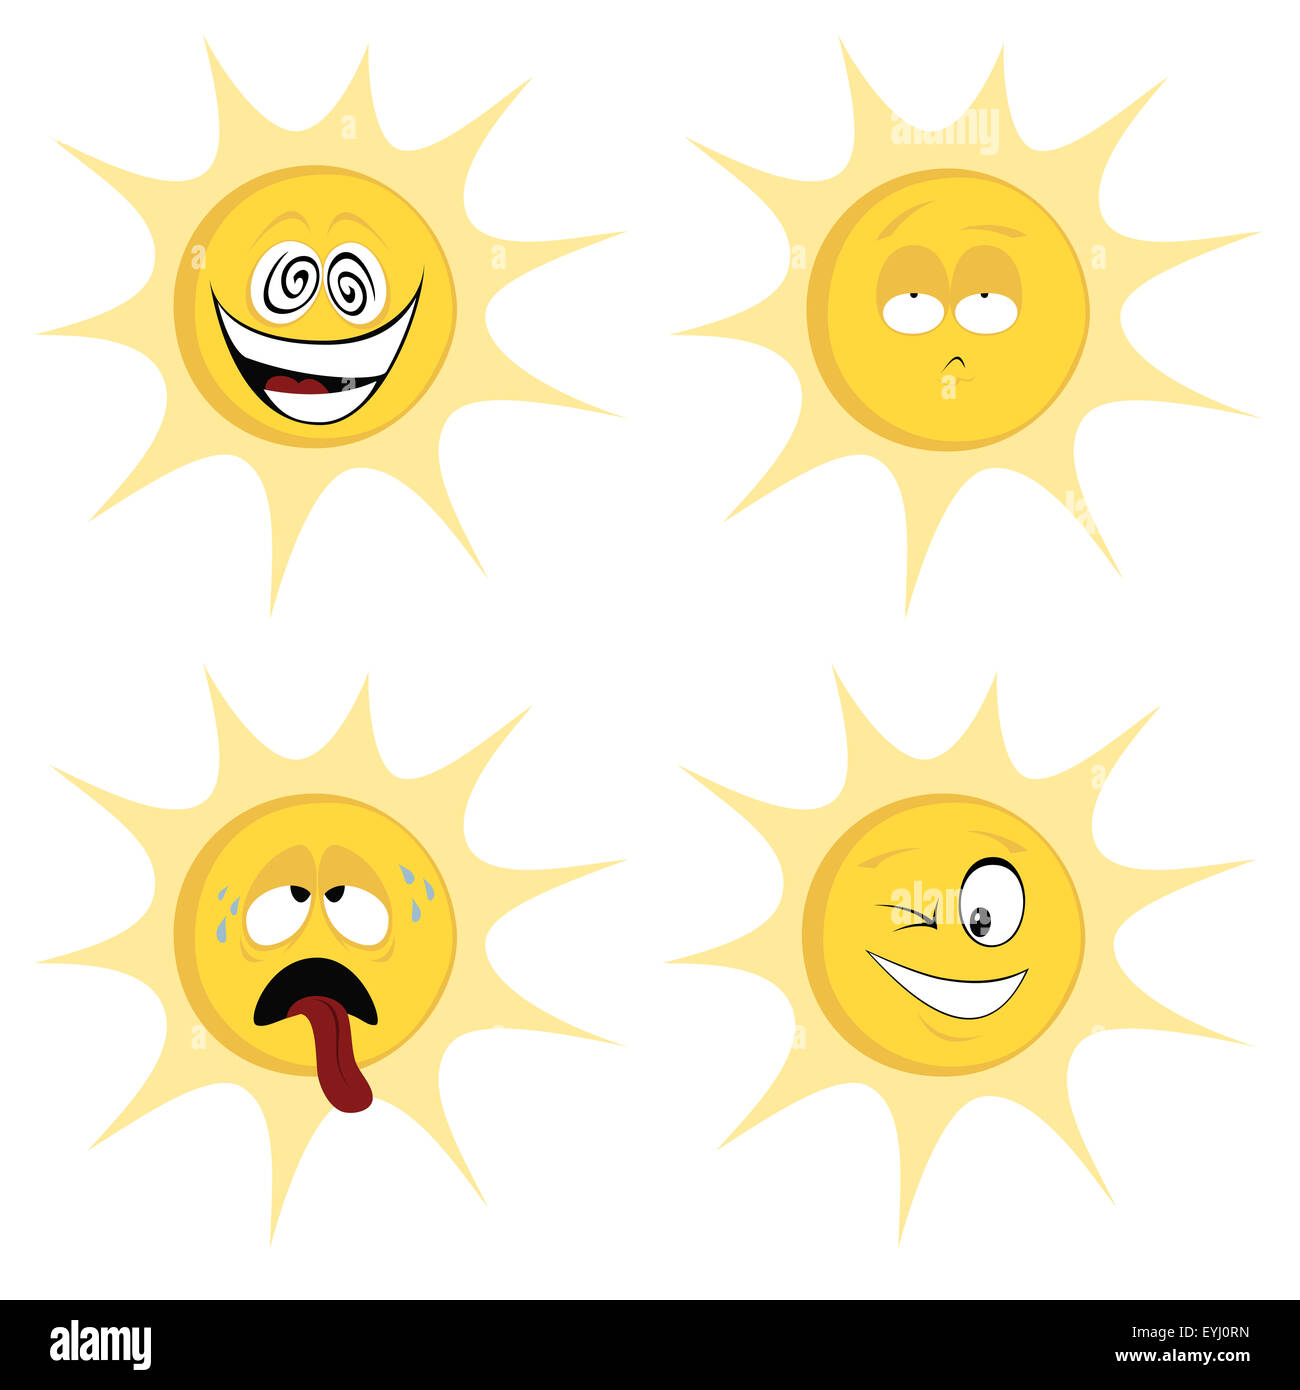 Collection of four colored, cute sun character icons (emoticons) with different facial expression - Stock Image